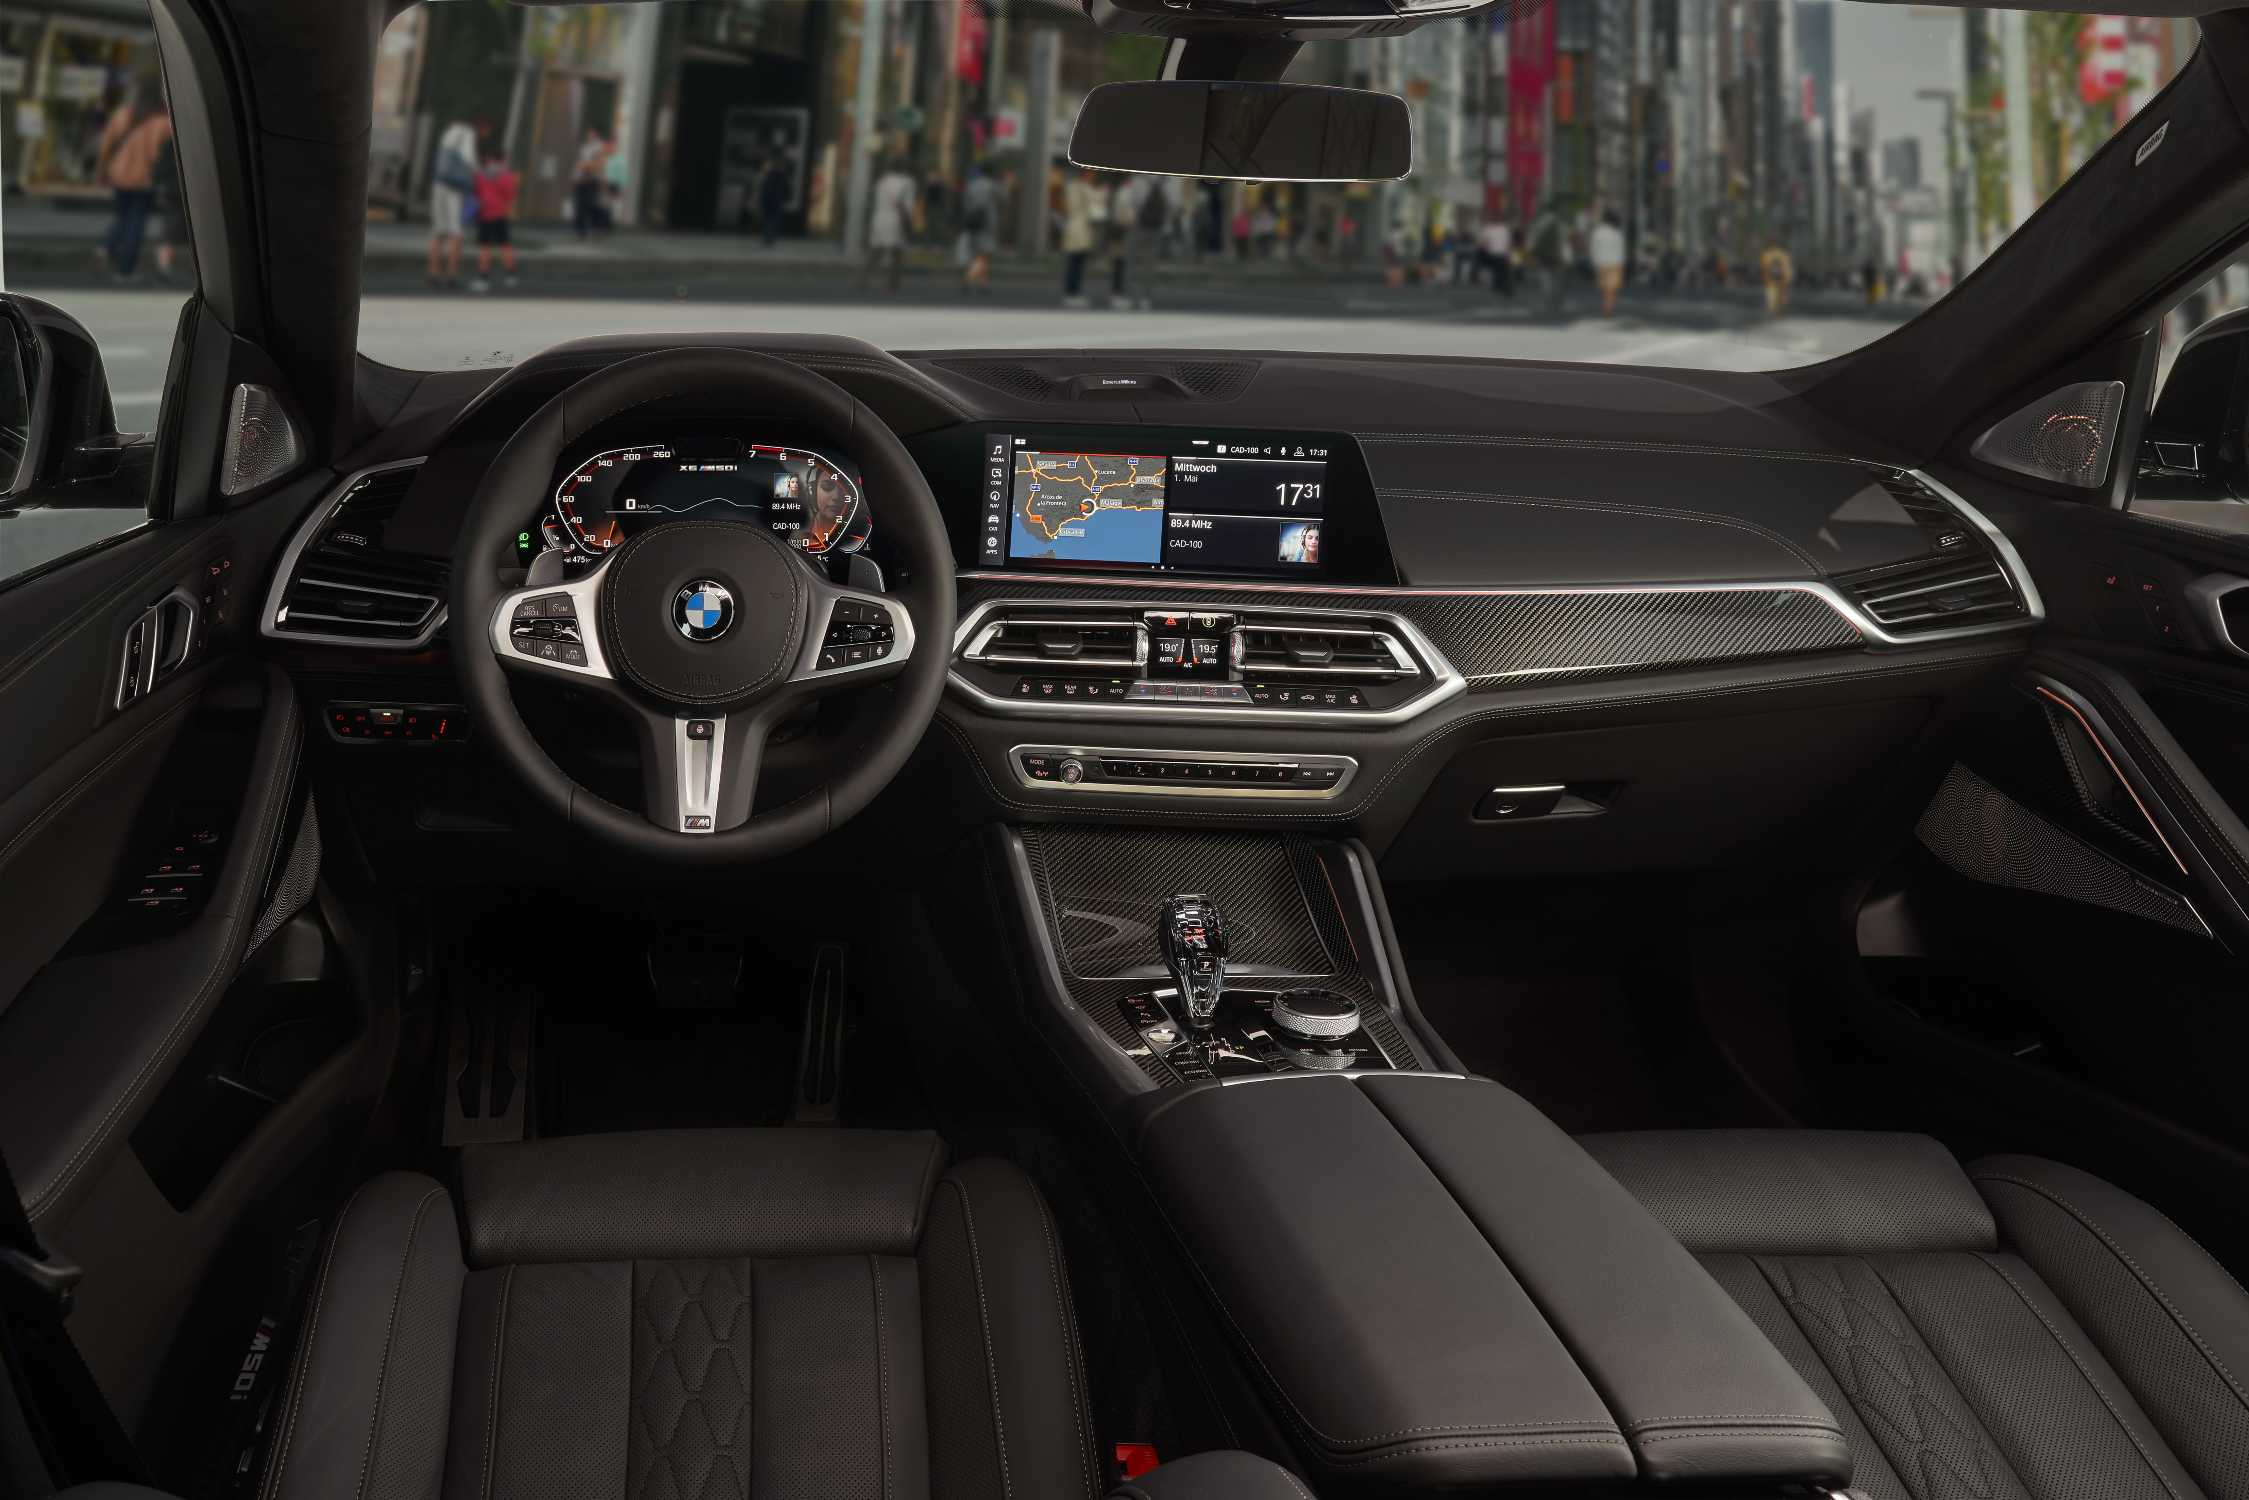 The New Bmw X6 Interieur And Details 07 2019